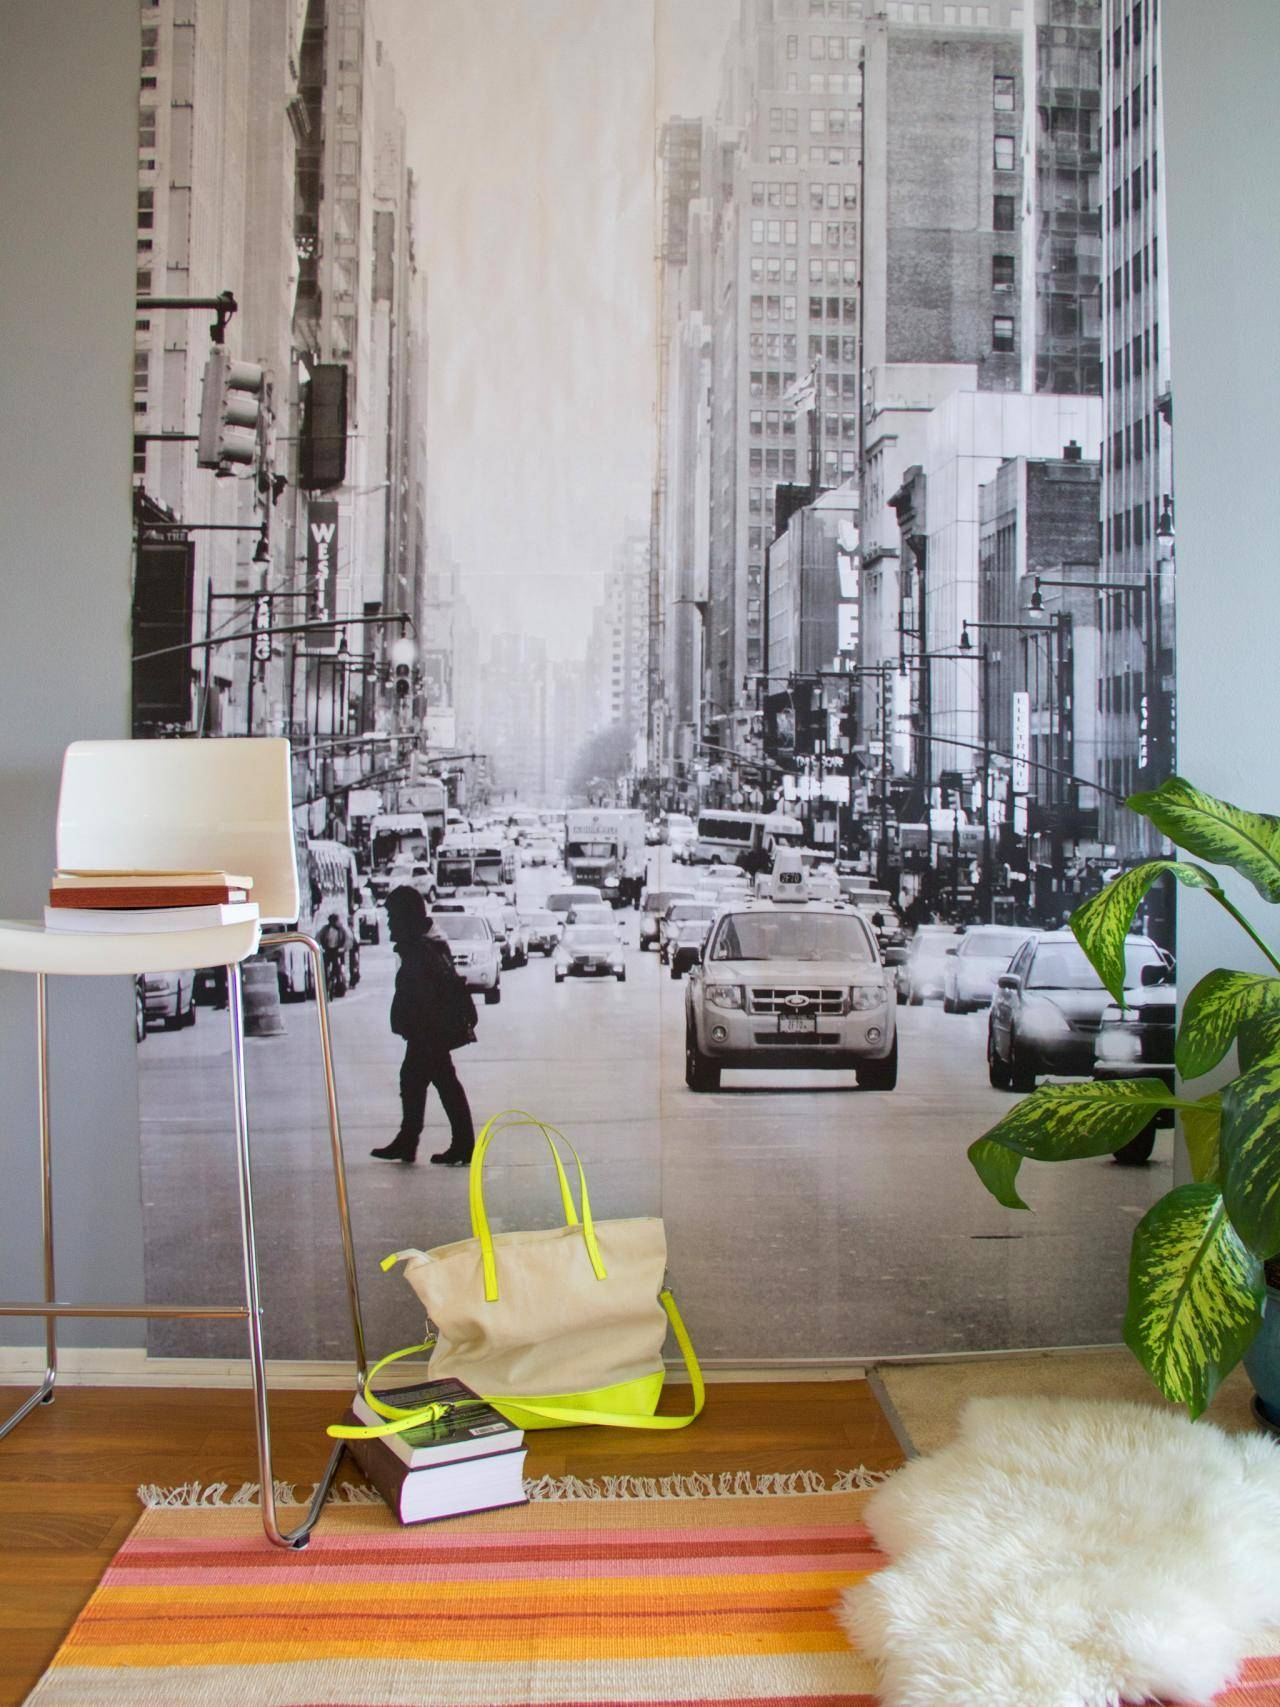 7 Diy Art Projects To Try   Hgtv's Decorating & Design Blog   Hgtv Inside 2017 Big Wall Art (View 19 of 20)